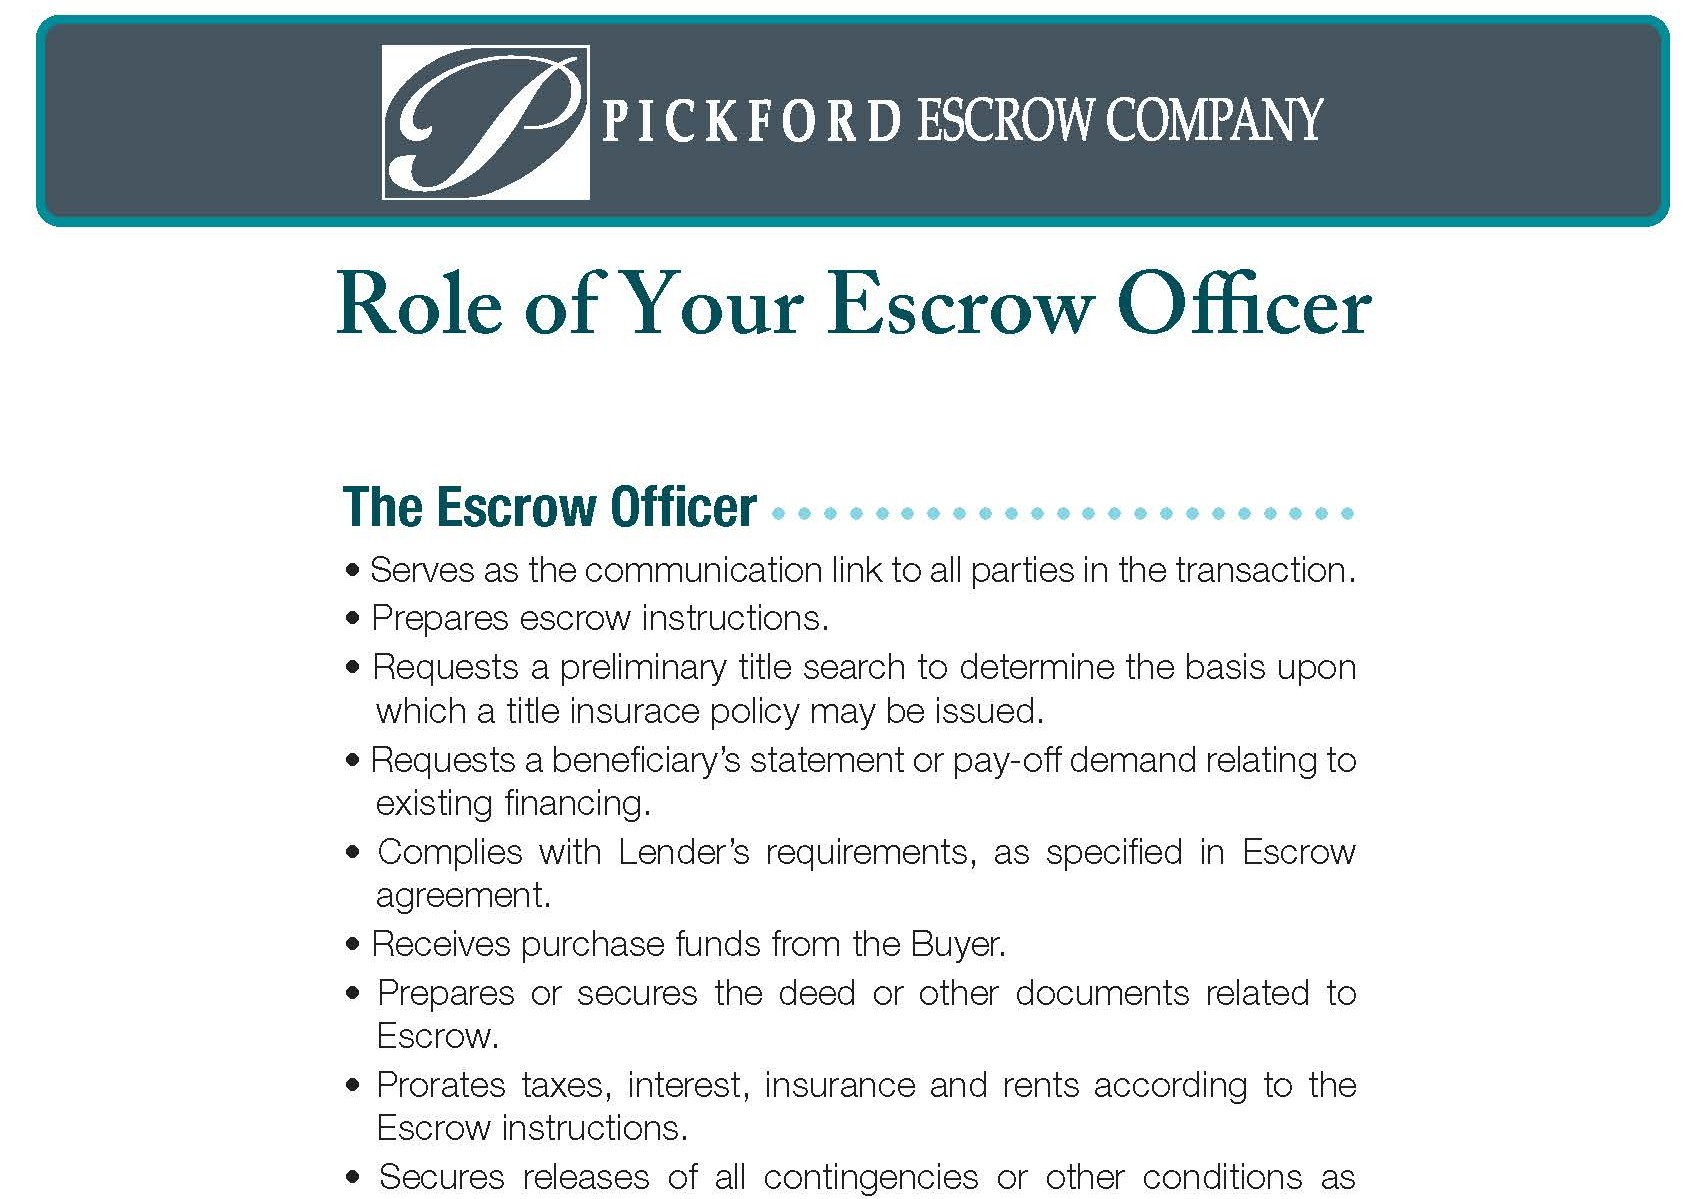 Role of Your Escrow Officer